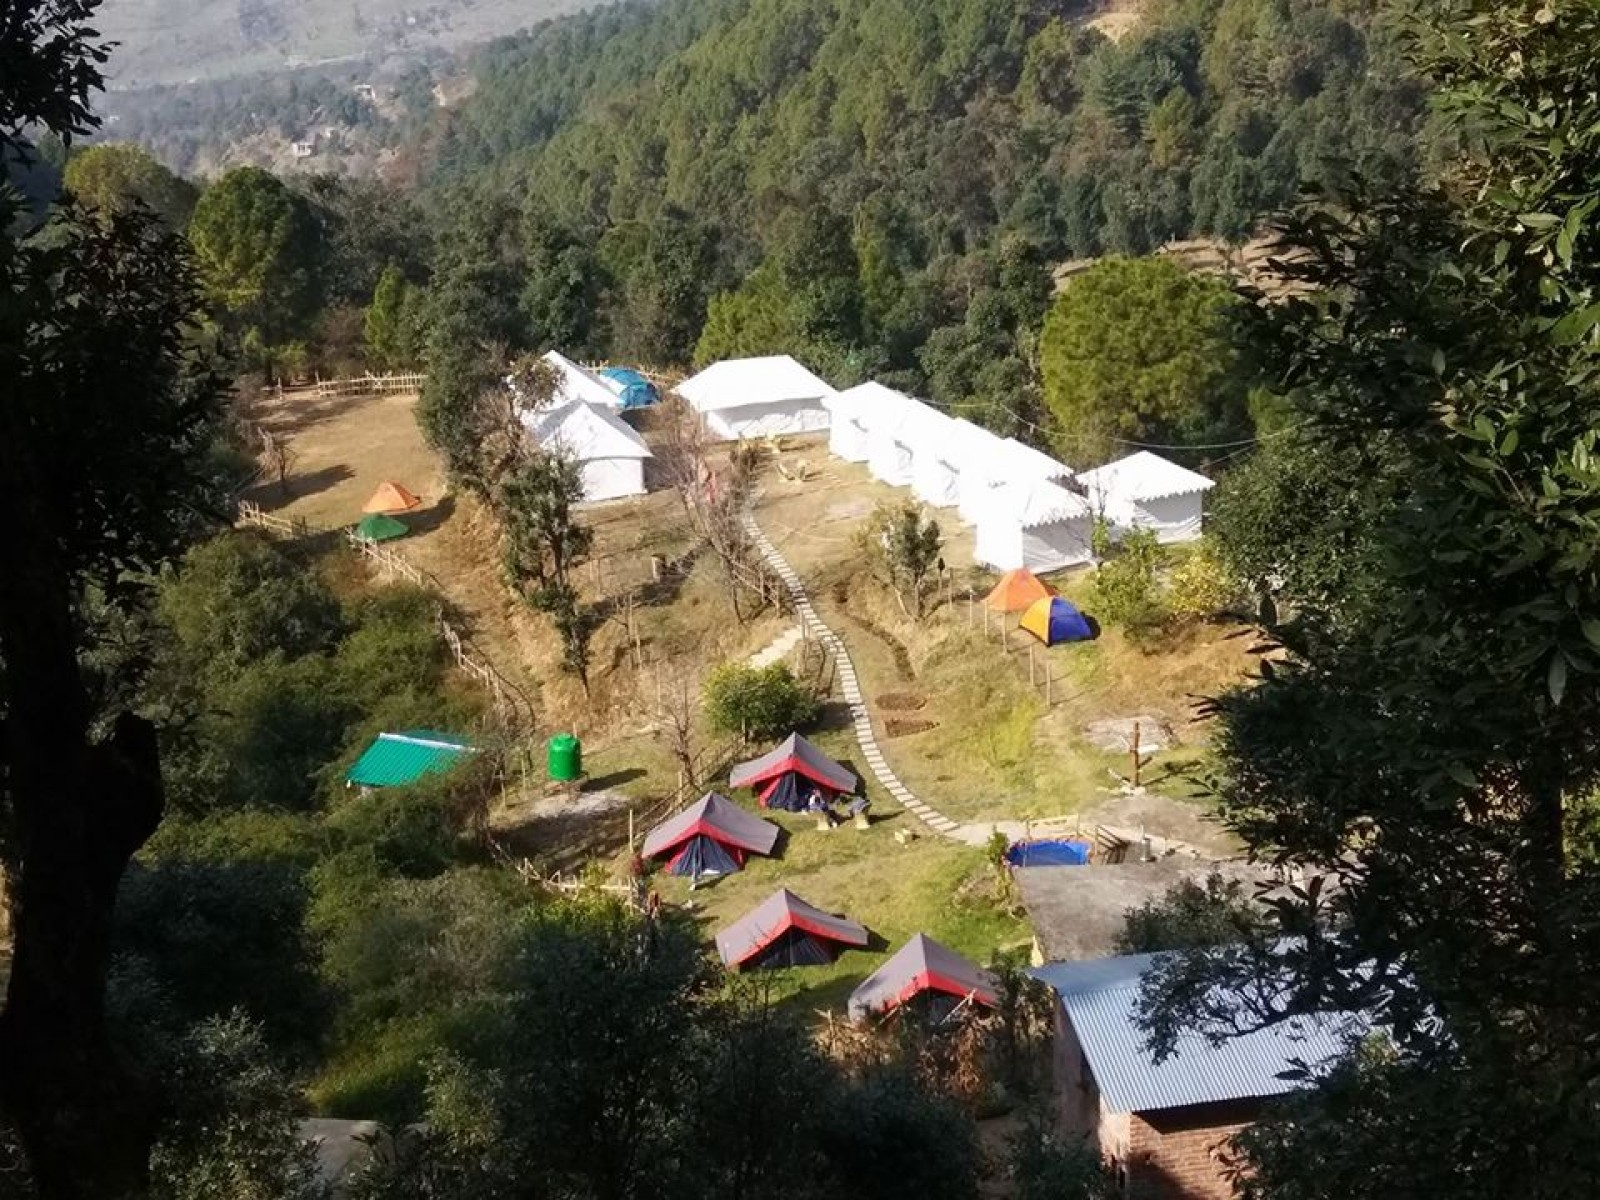 Camping in Bir Biling with dome tent stay